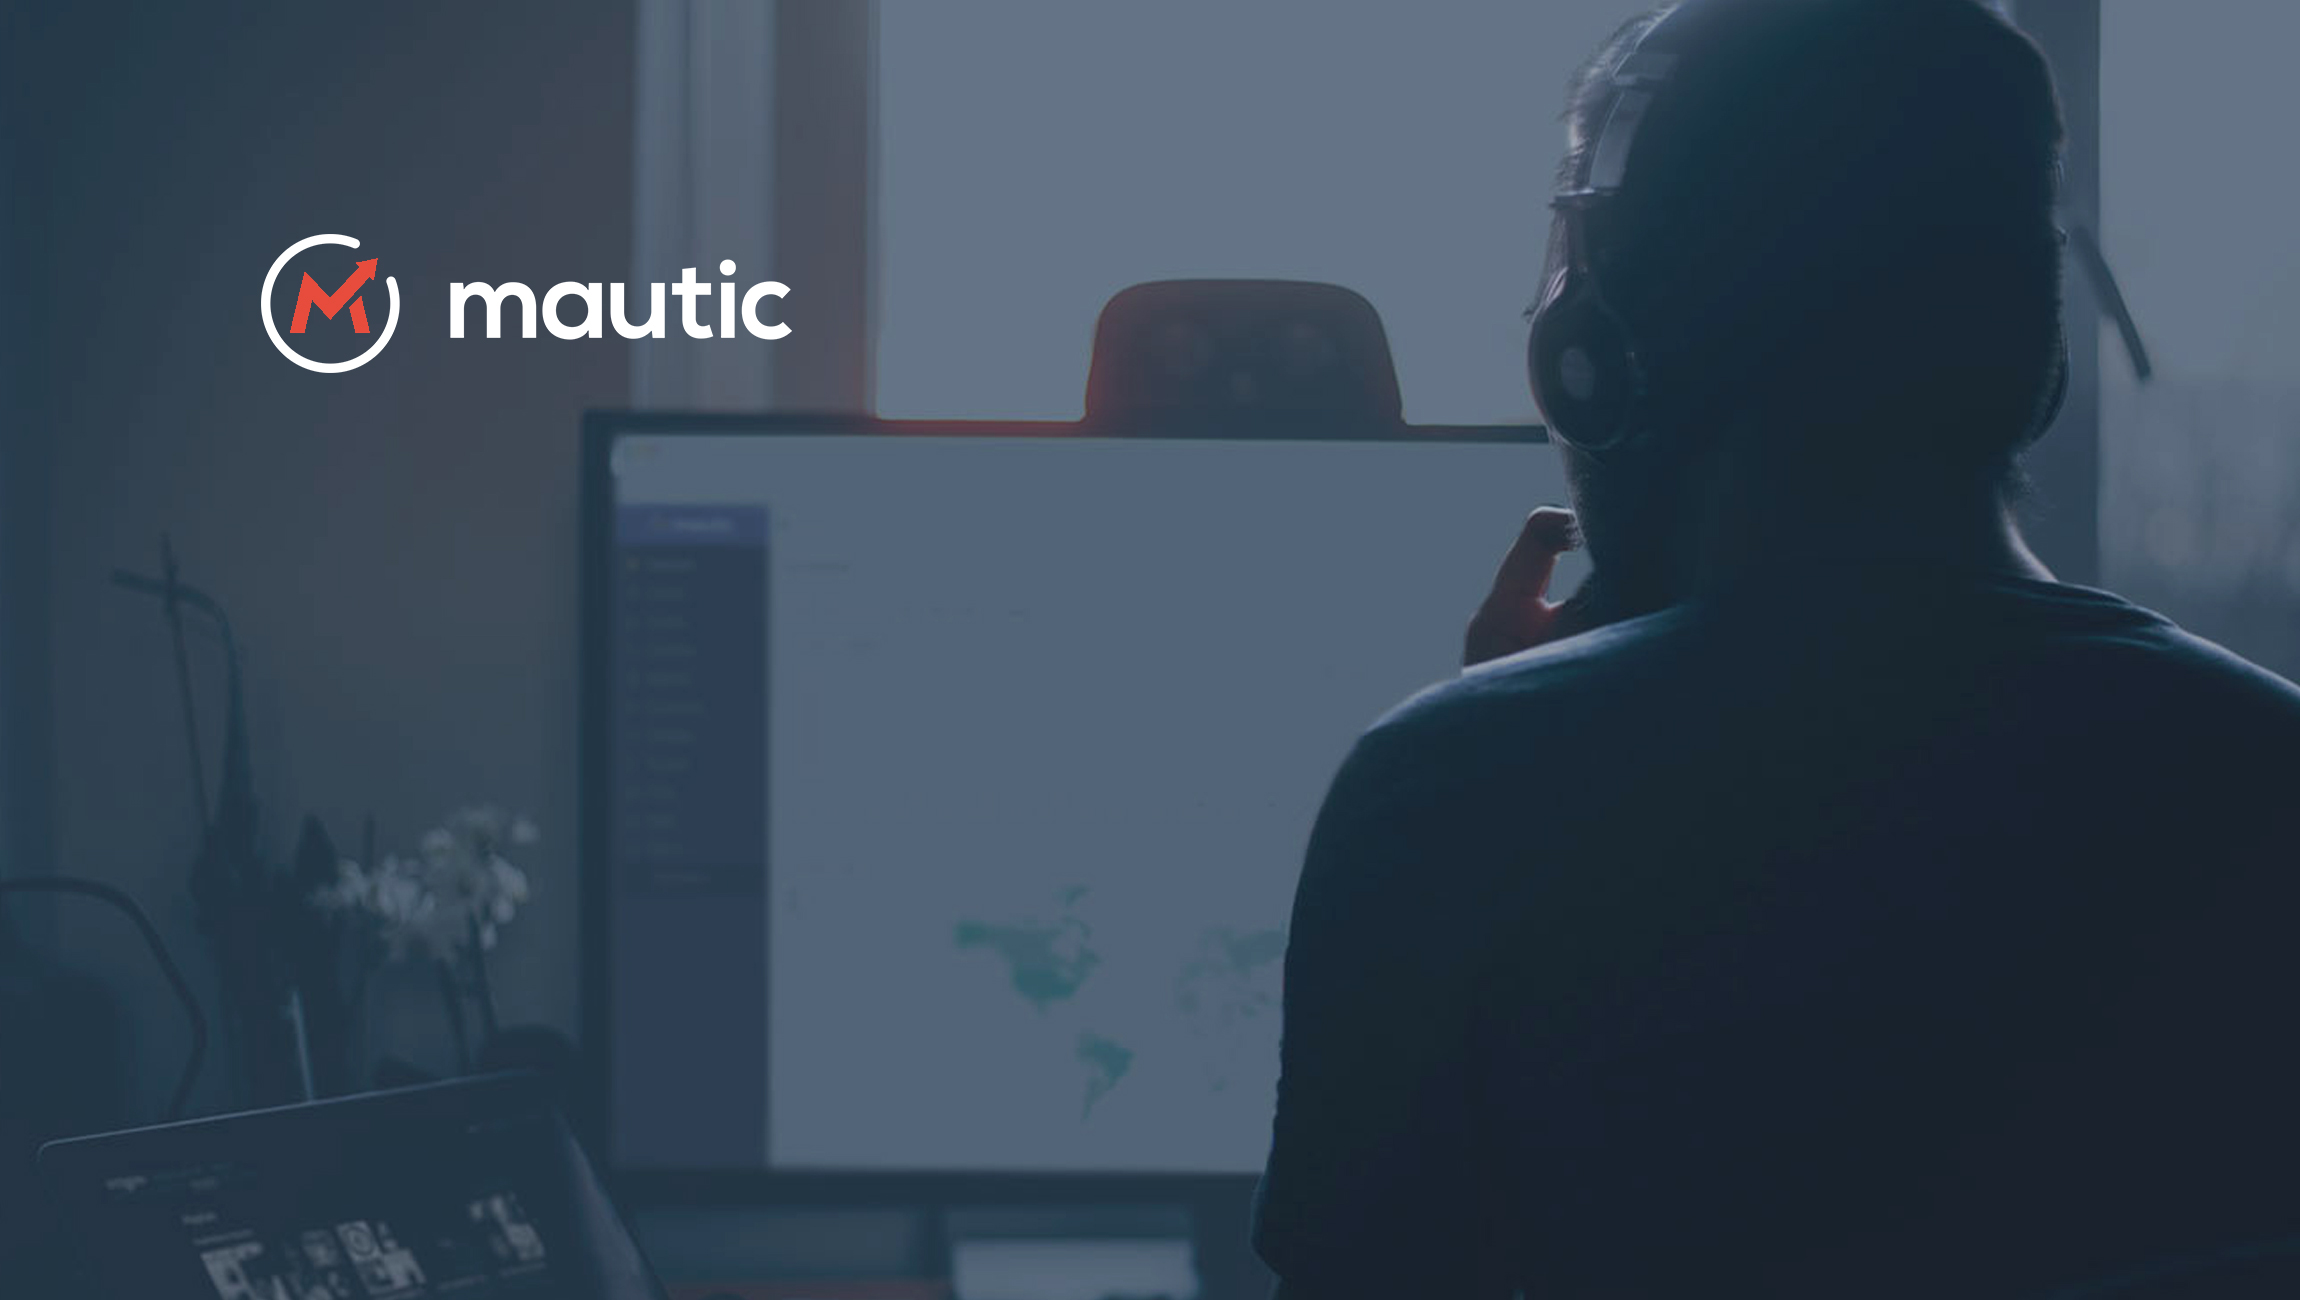 Mautic Archives — MarTechSeries